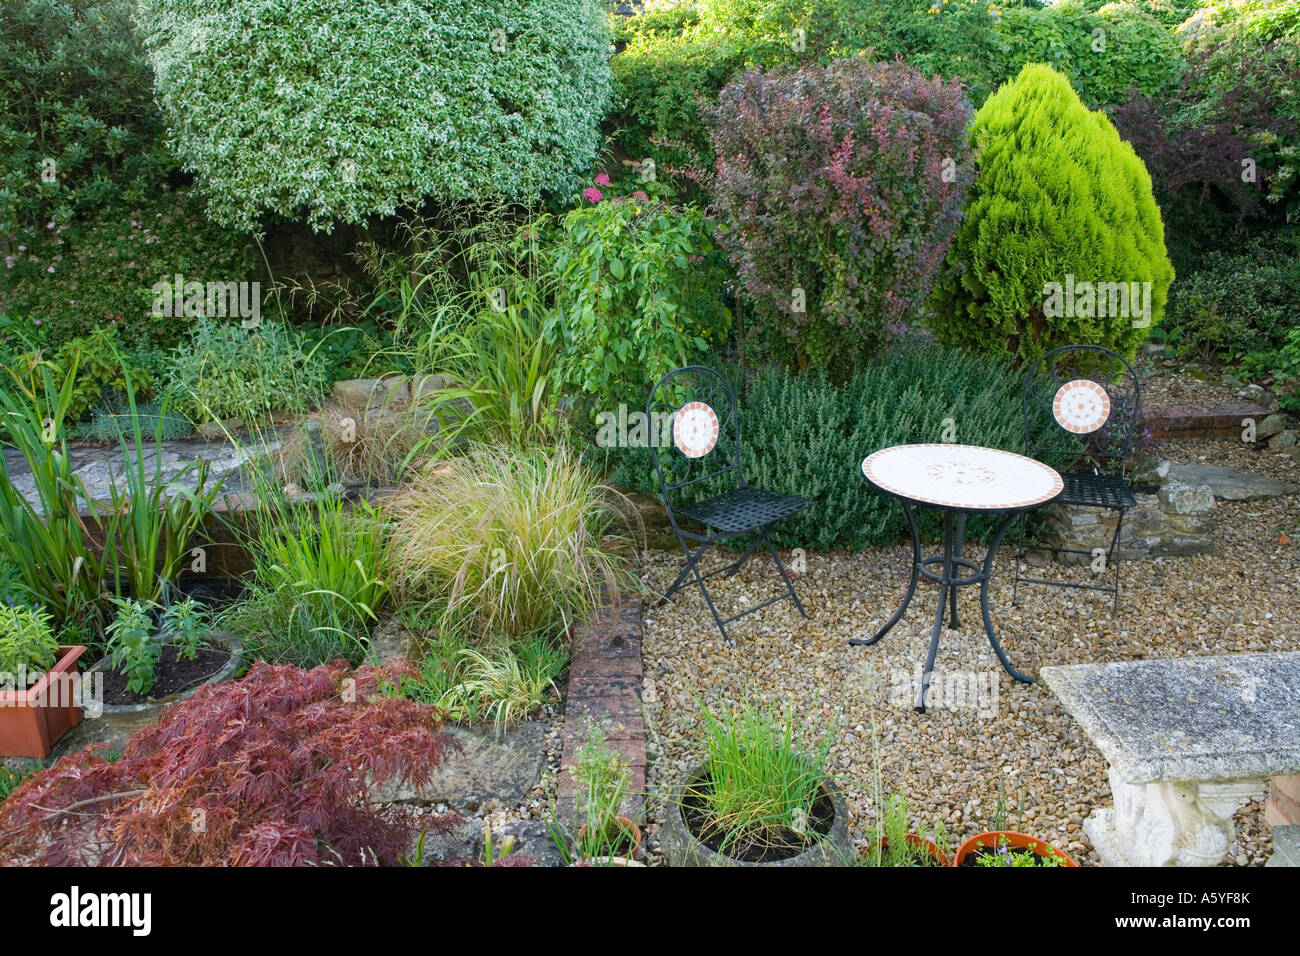 prospect house devon uk peter wadeley small gravel patio area with outdoor furniture pots and containers